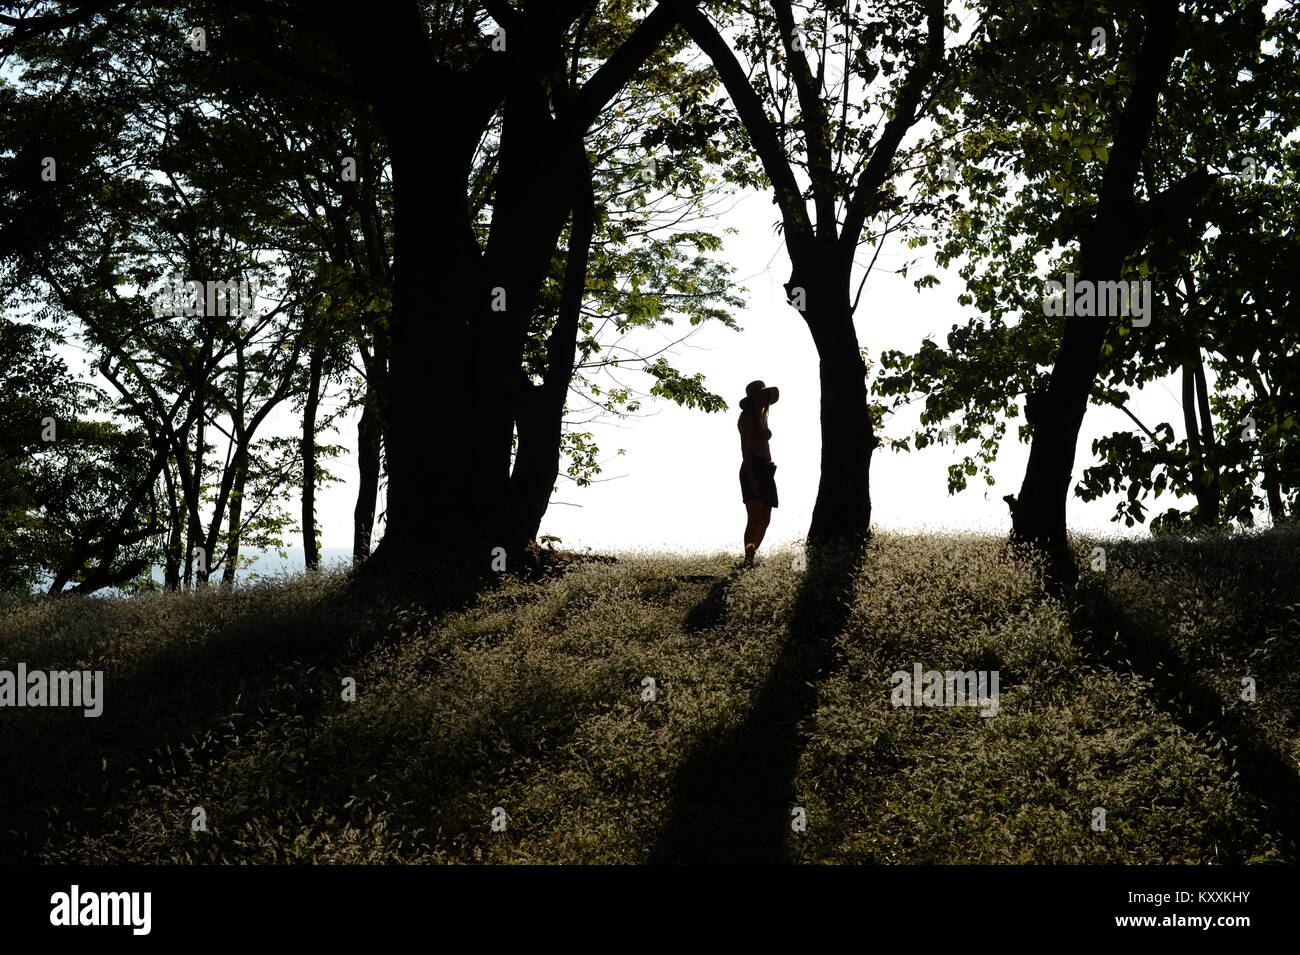 Young girl in hat silhouetted in trees on crest of hill. - Stock Image